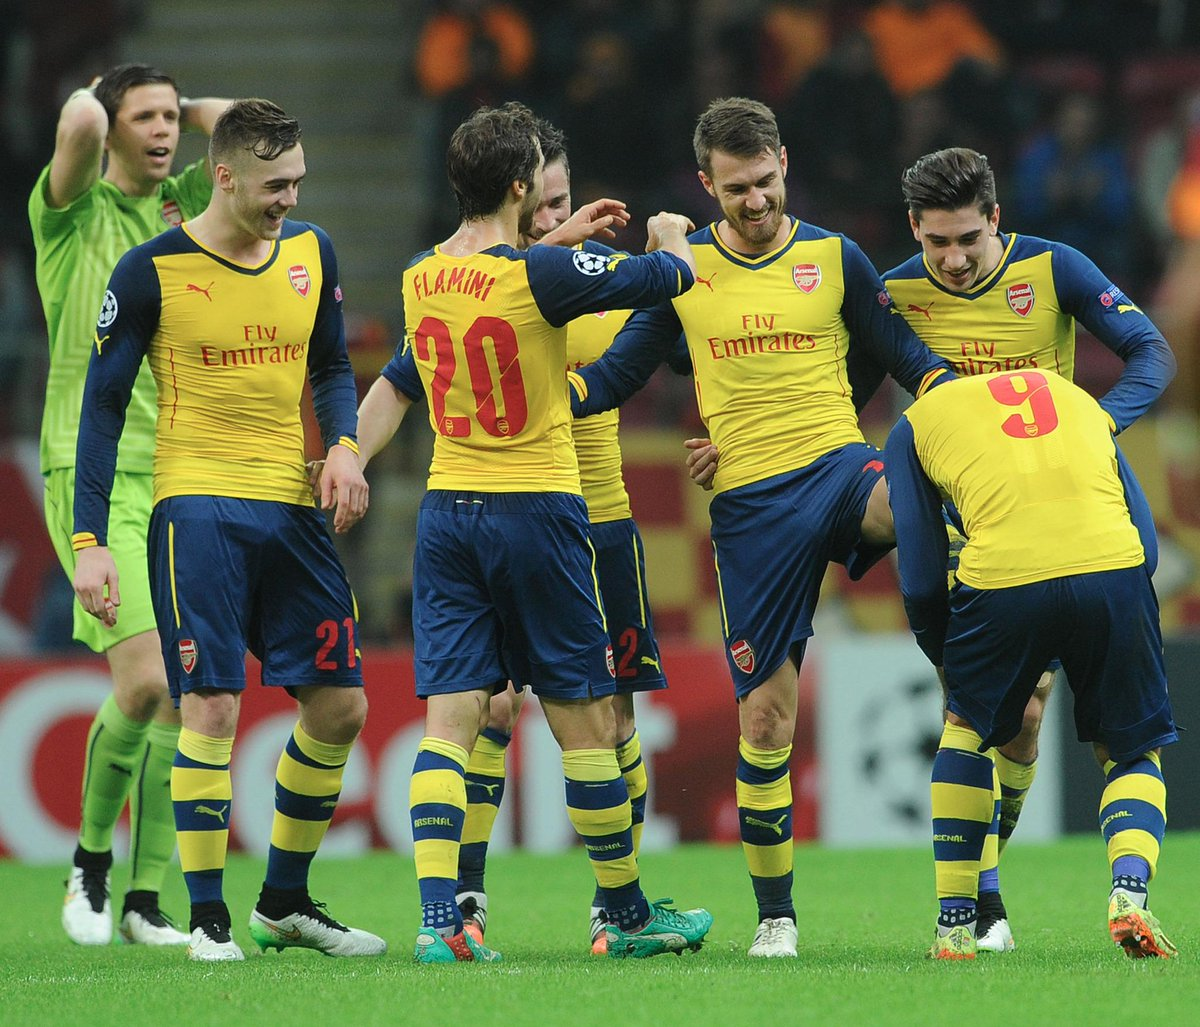 Arsenal defeated Galatasaray 4-1 on Tuesday. Image: Arsenal.com